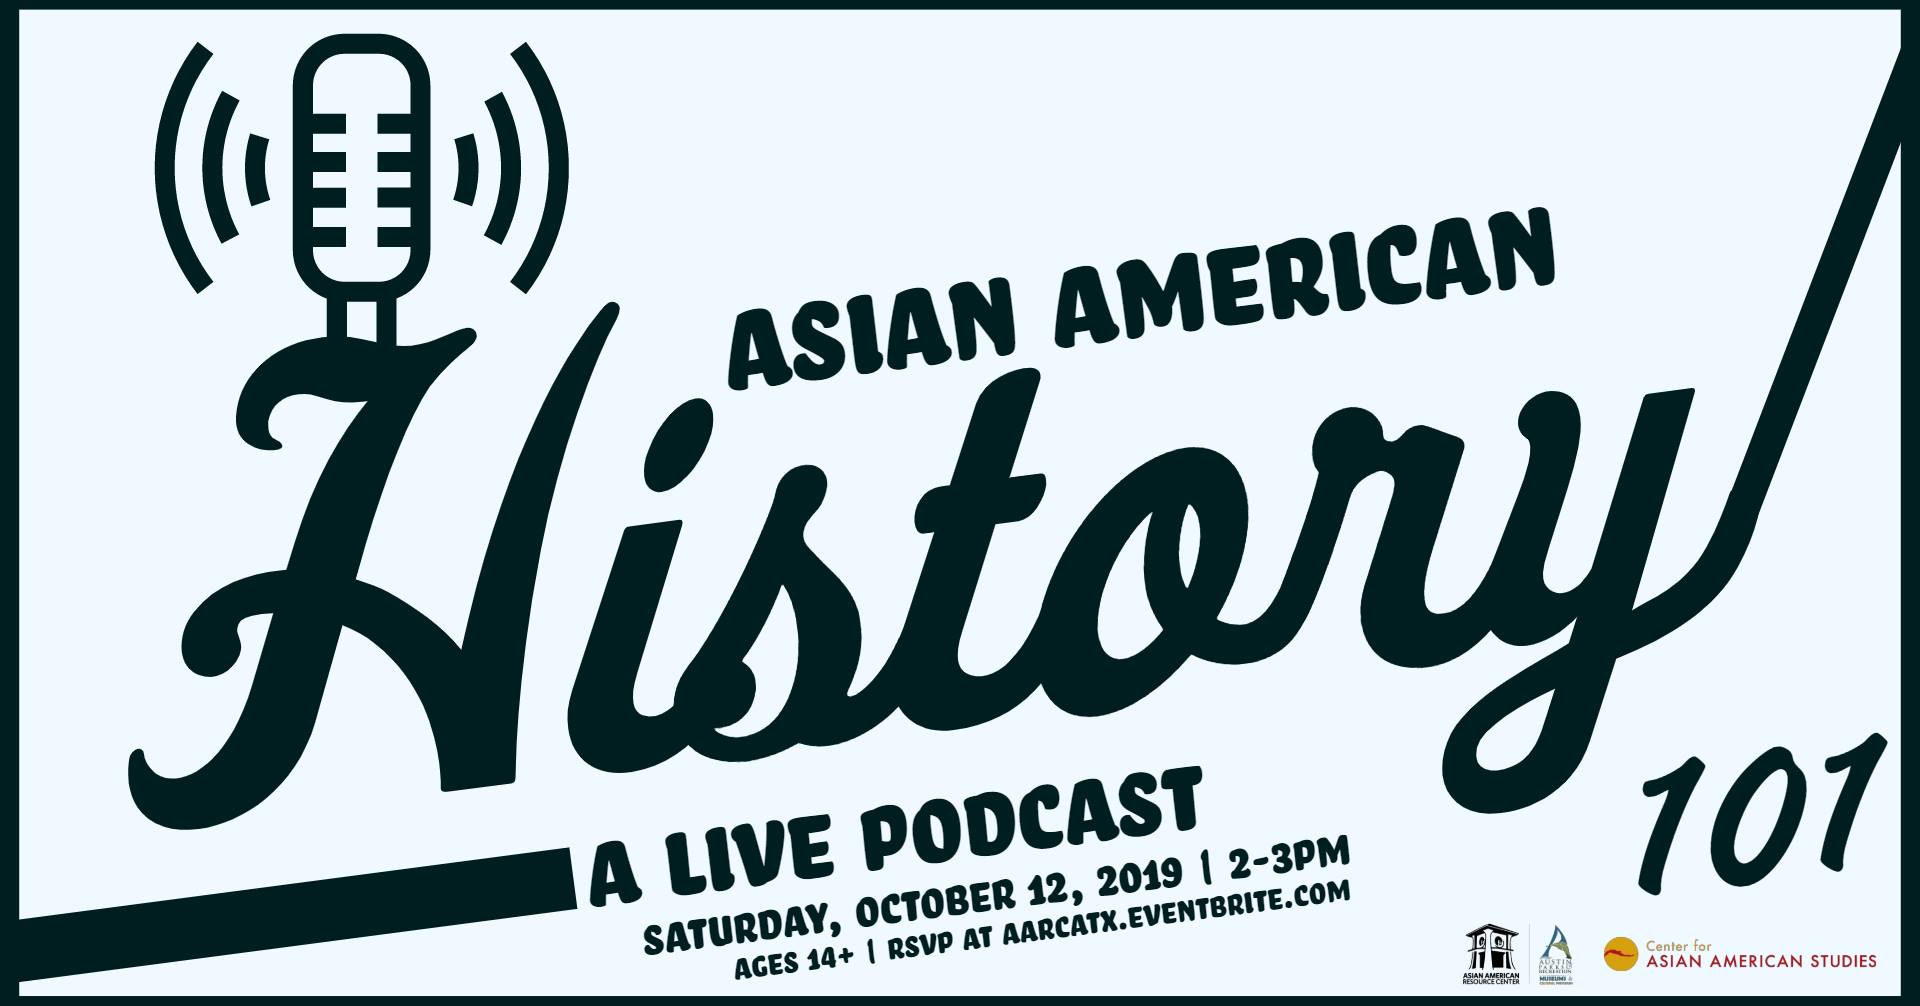 Asian American History 101: A Live Podcast